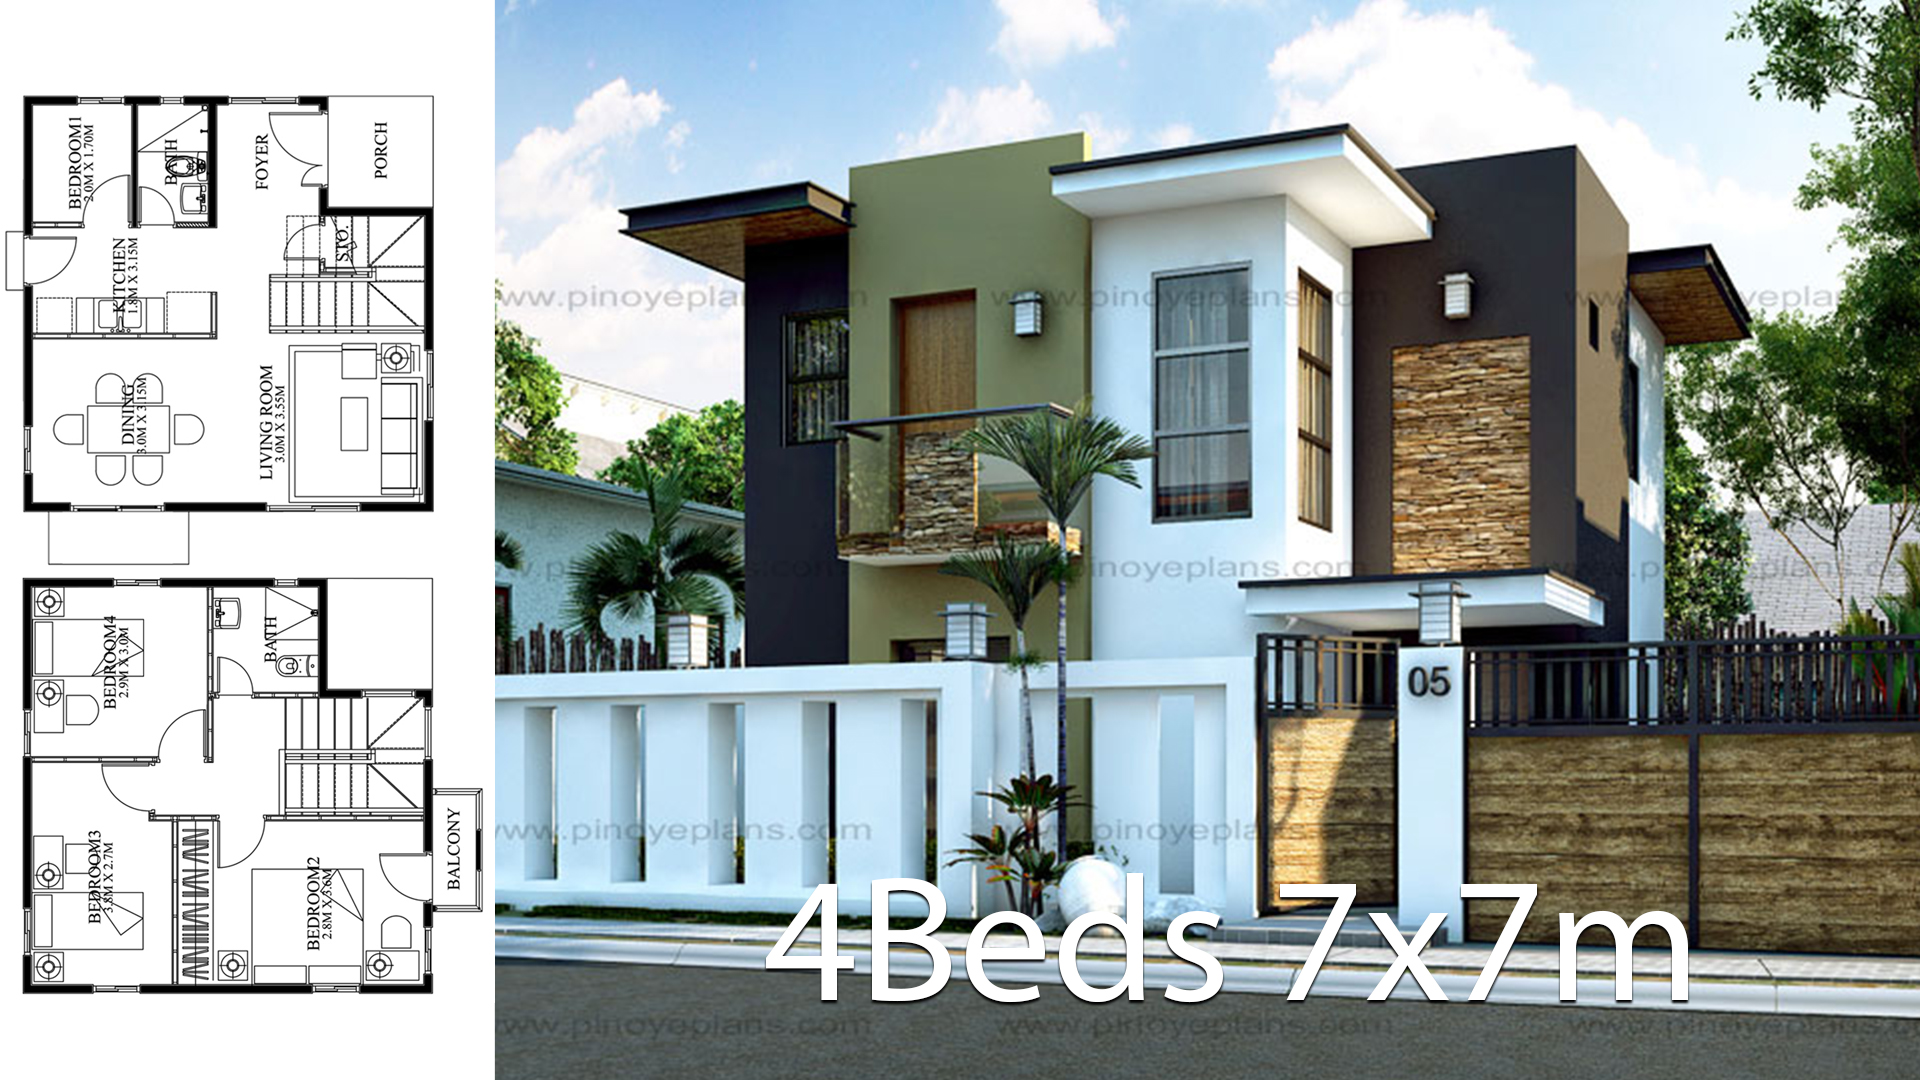 Modern Home design 7x7m with 4 bedrooms - Home Ideas